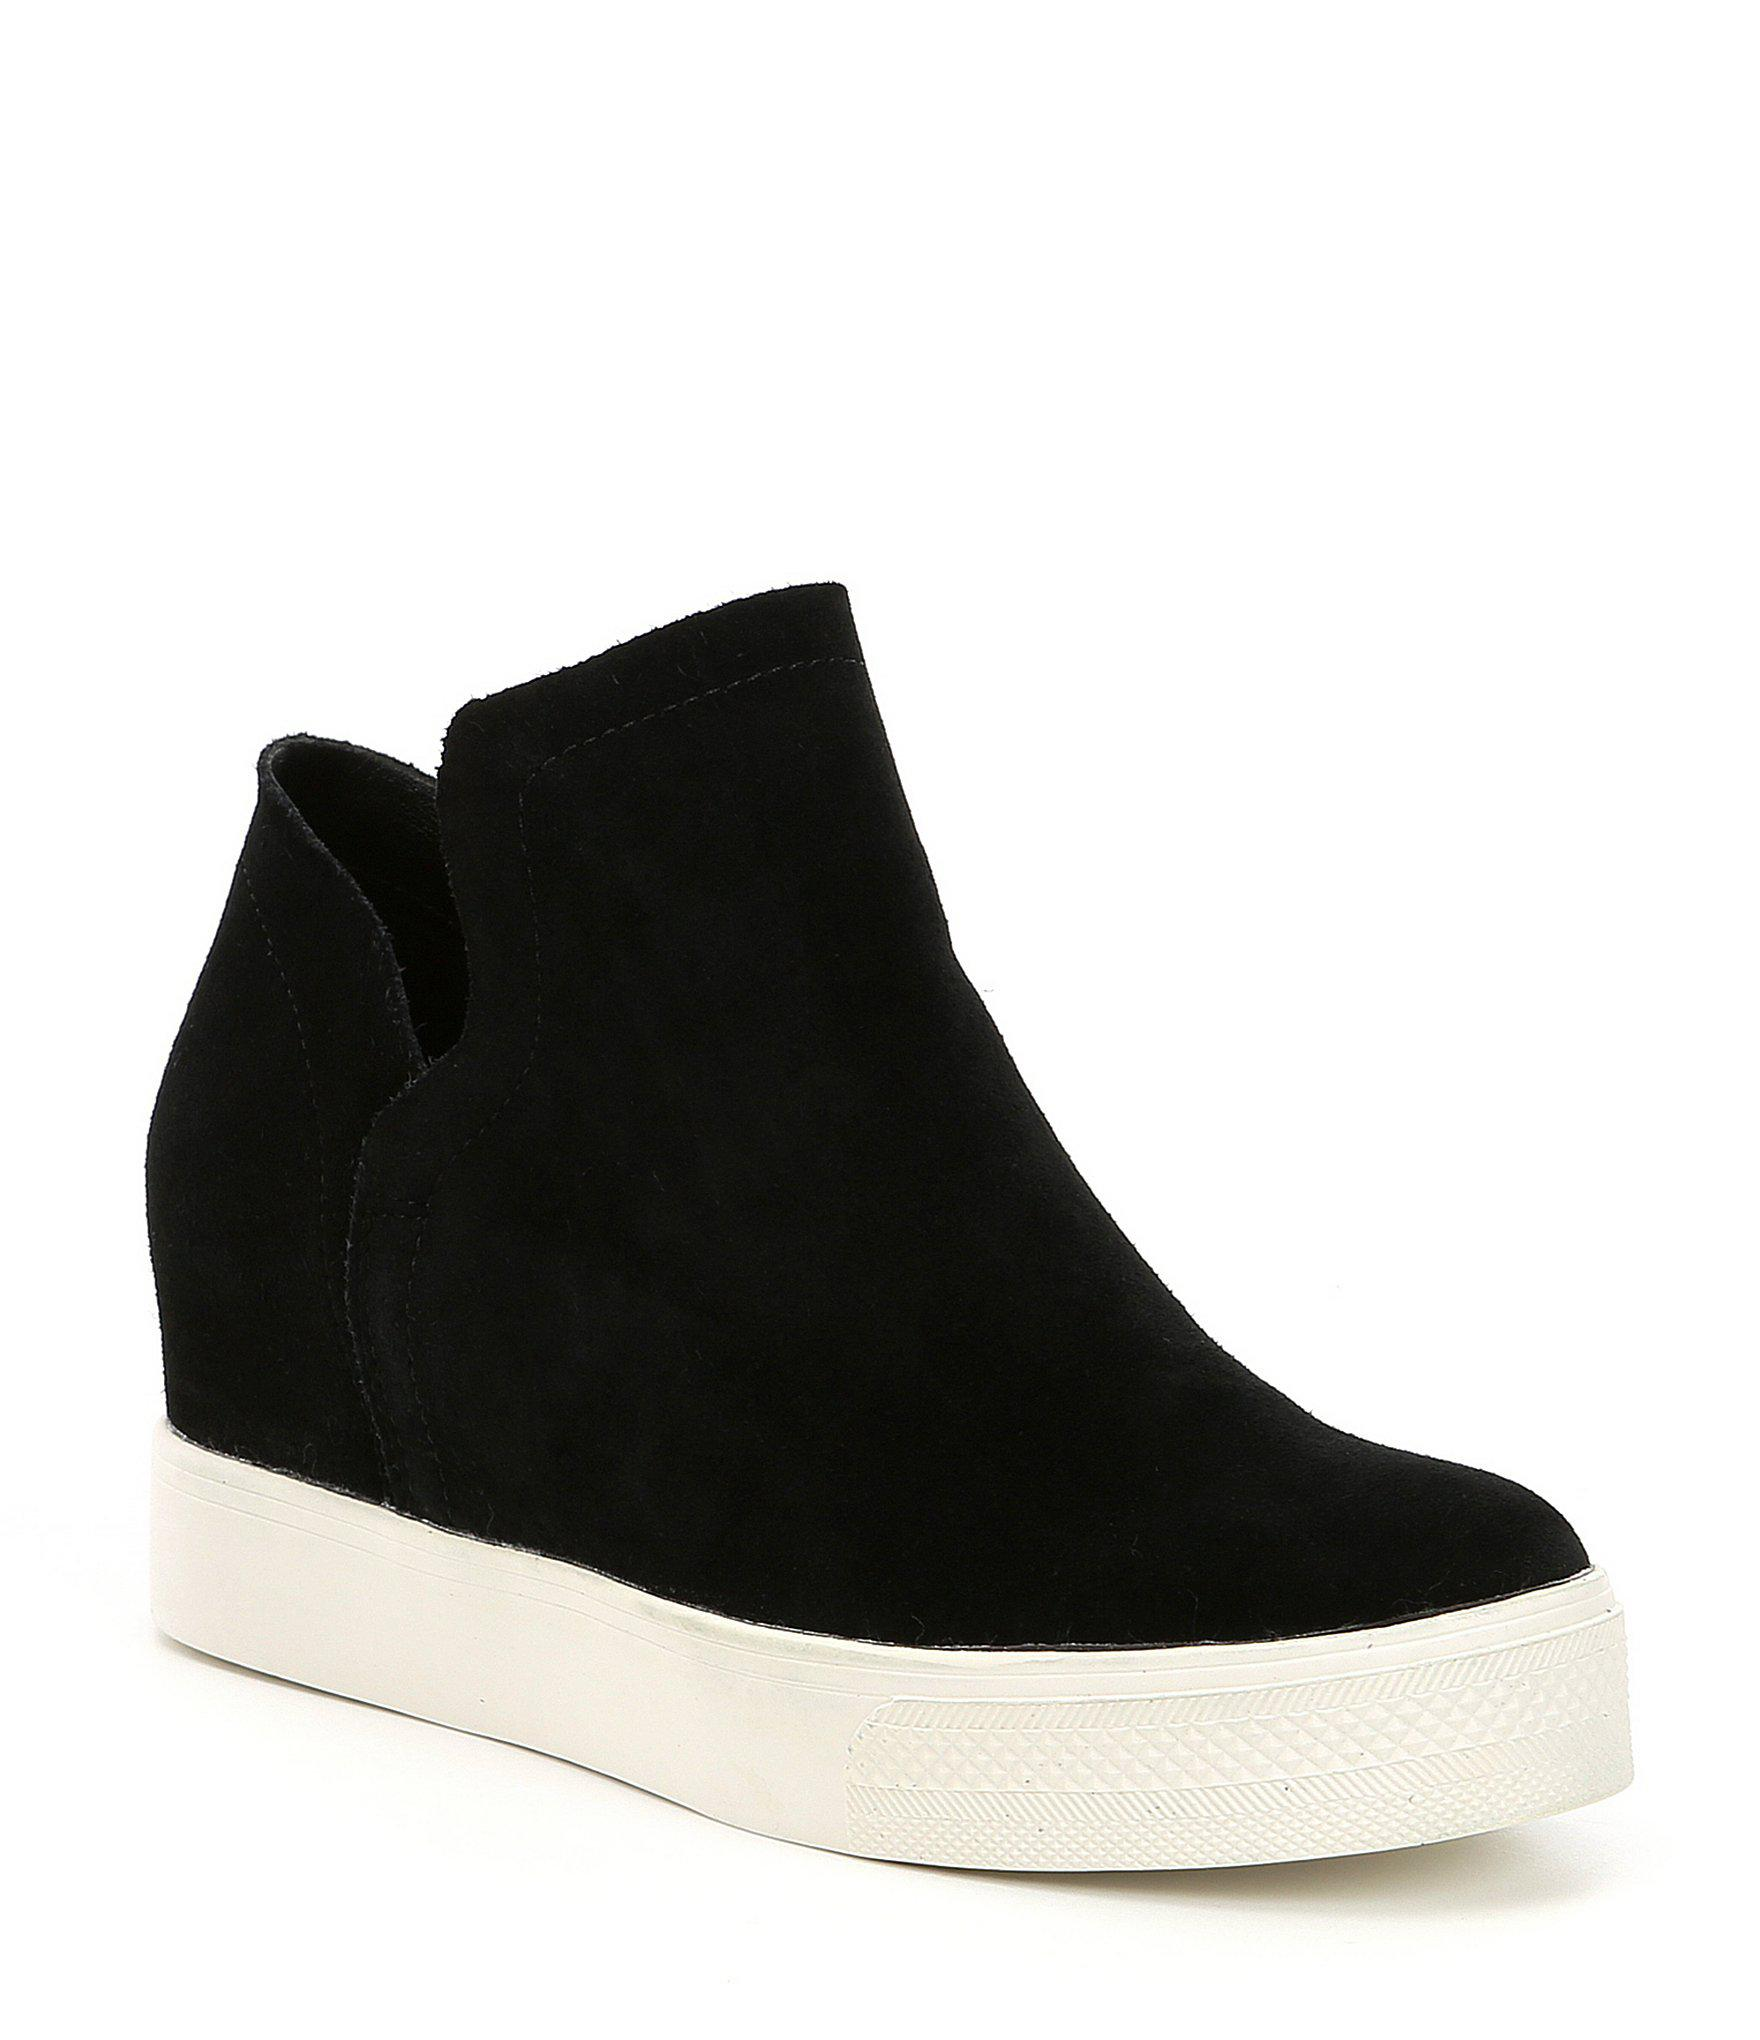 9dbe37bcbc5 Women's Wrangle Suede Platform Wedge Sneakers